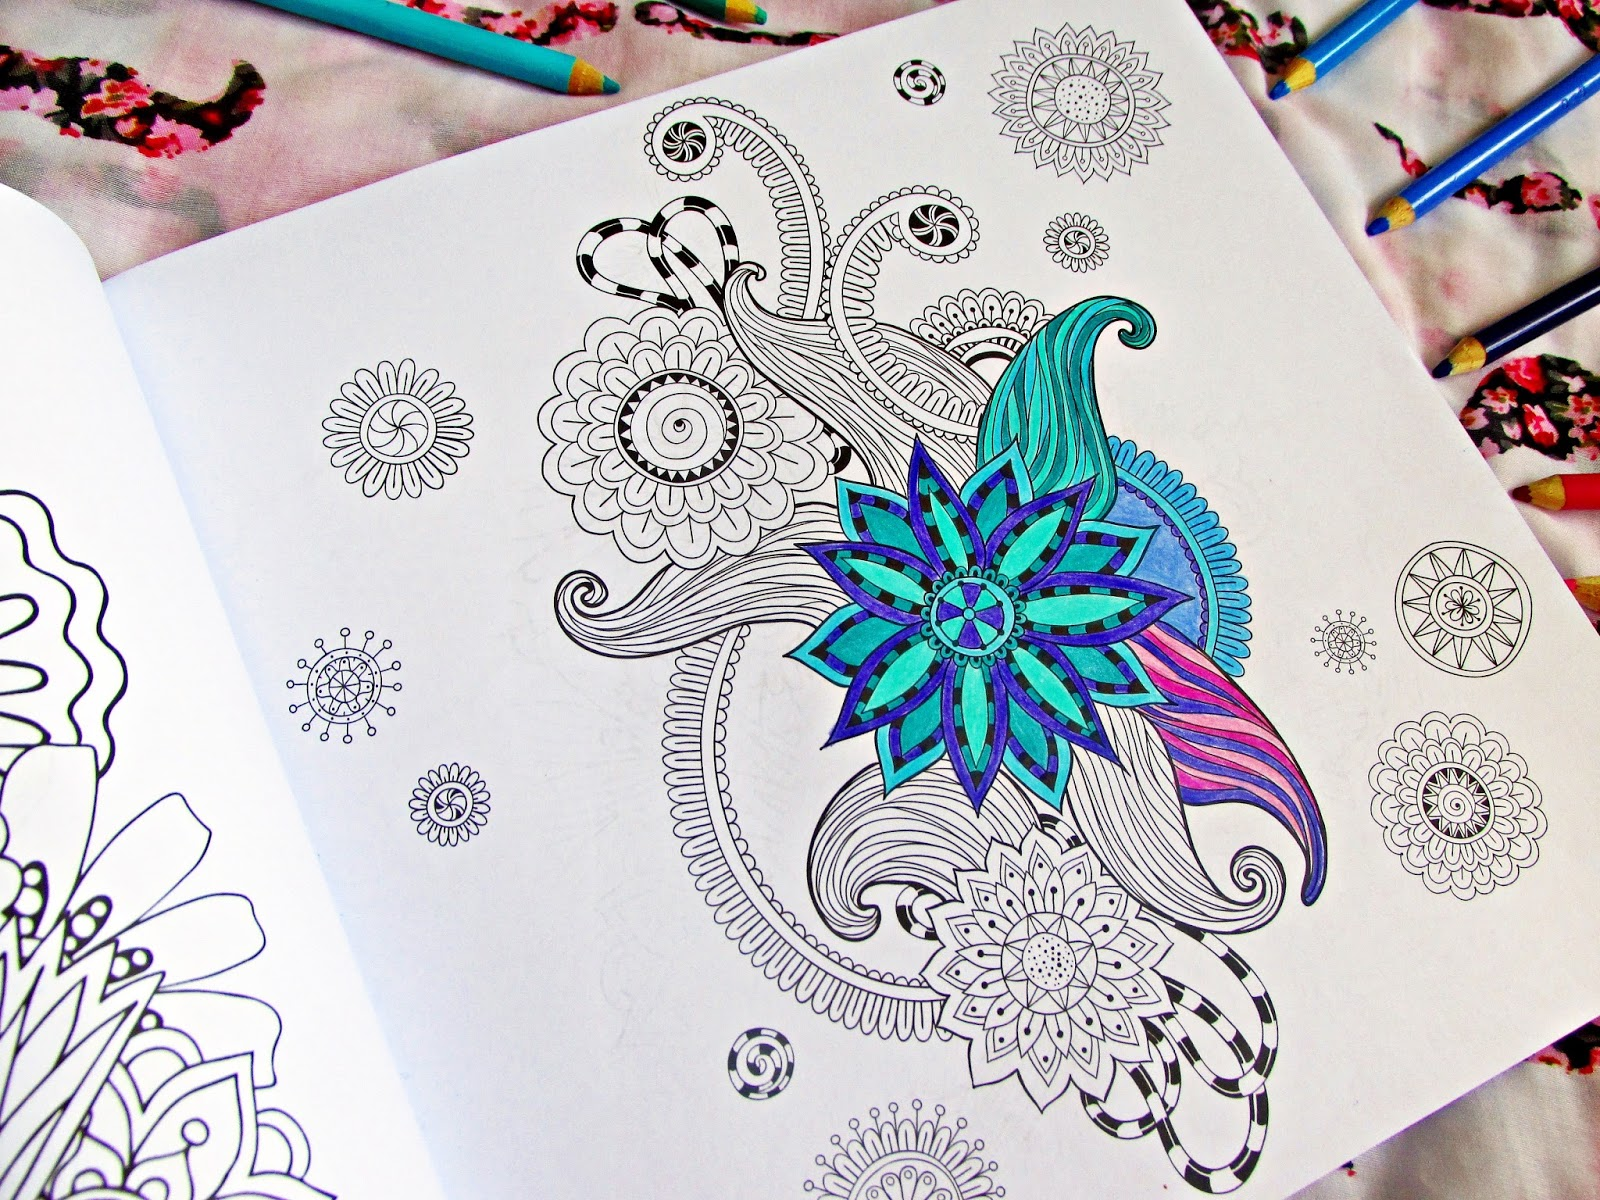 Colouring adults benefits - I M Not The Only Adult Who Has Realised The Benefits Of Colouring Millions Of Adults All Around The World Have Returned To The Fun Childhood Pastime For